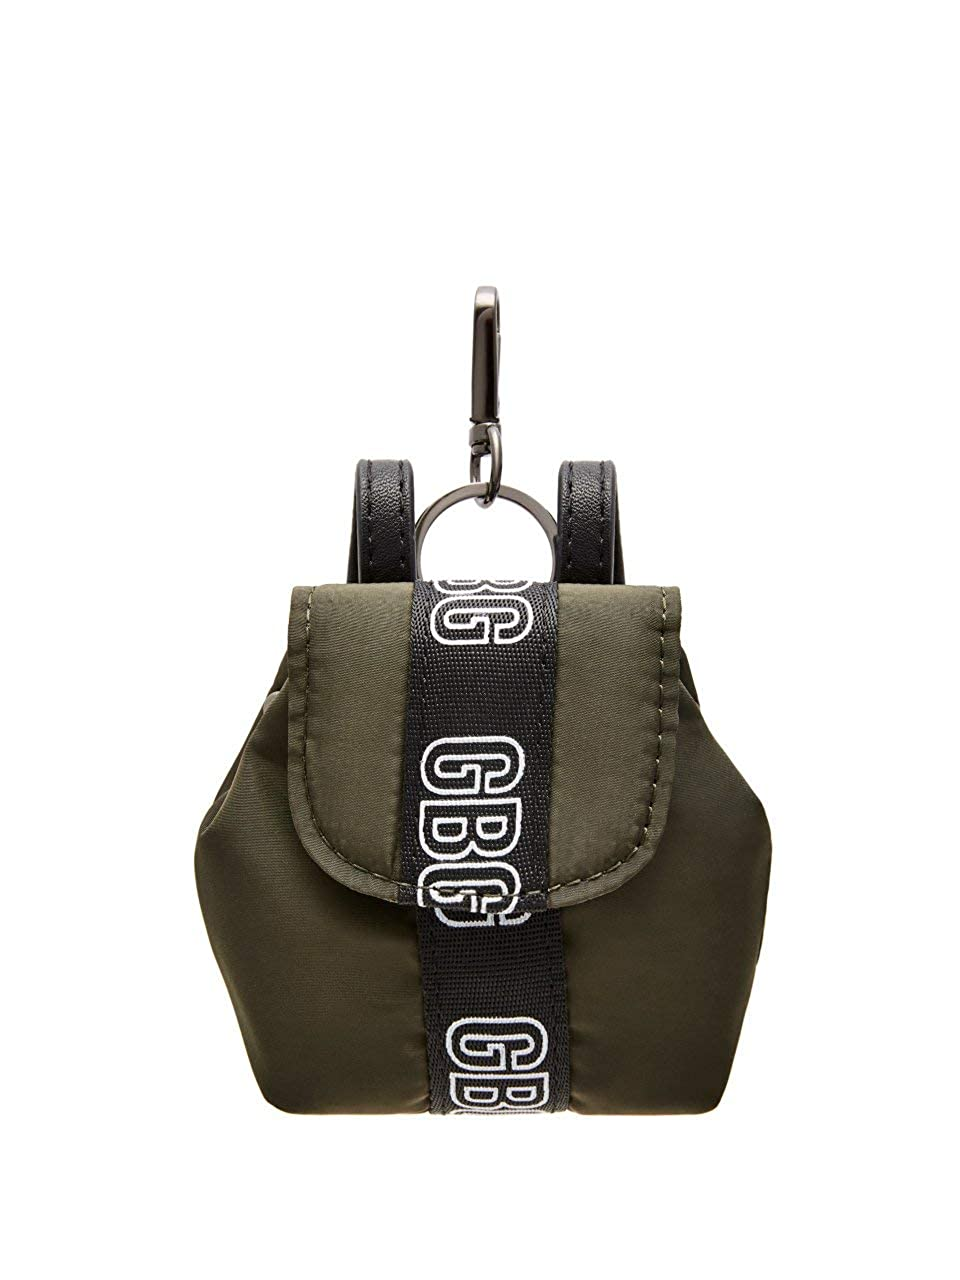 G by GUESS APPAREL レディース NS オリーブ(Olive) B07NNHVCNT